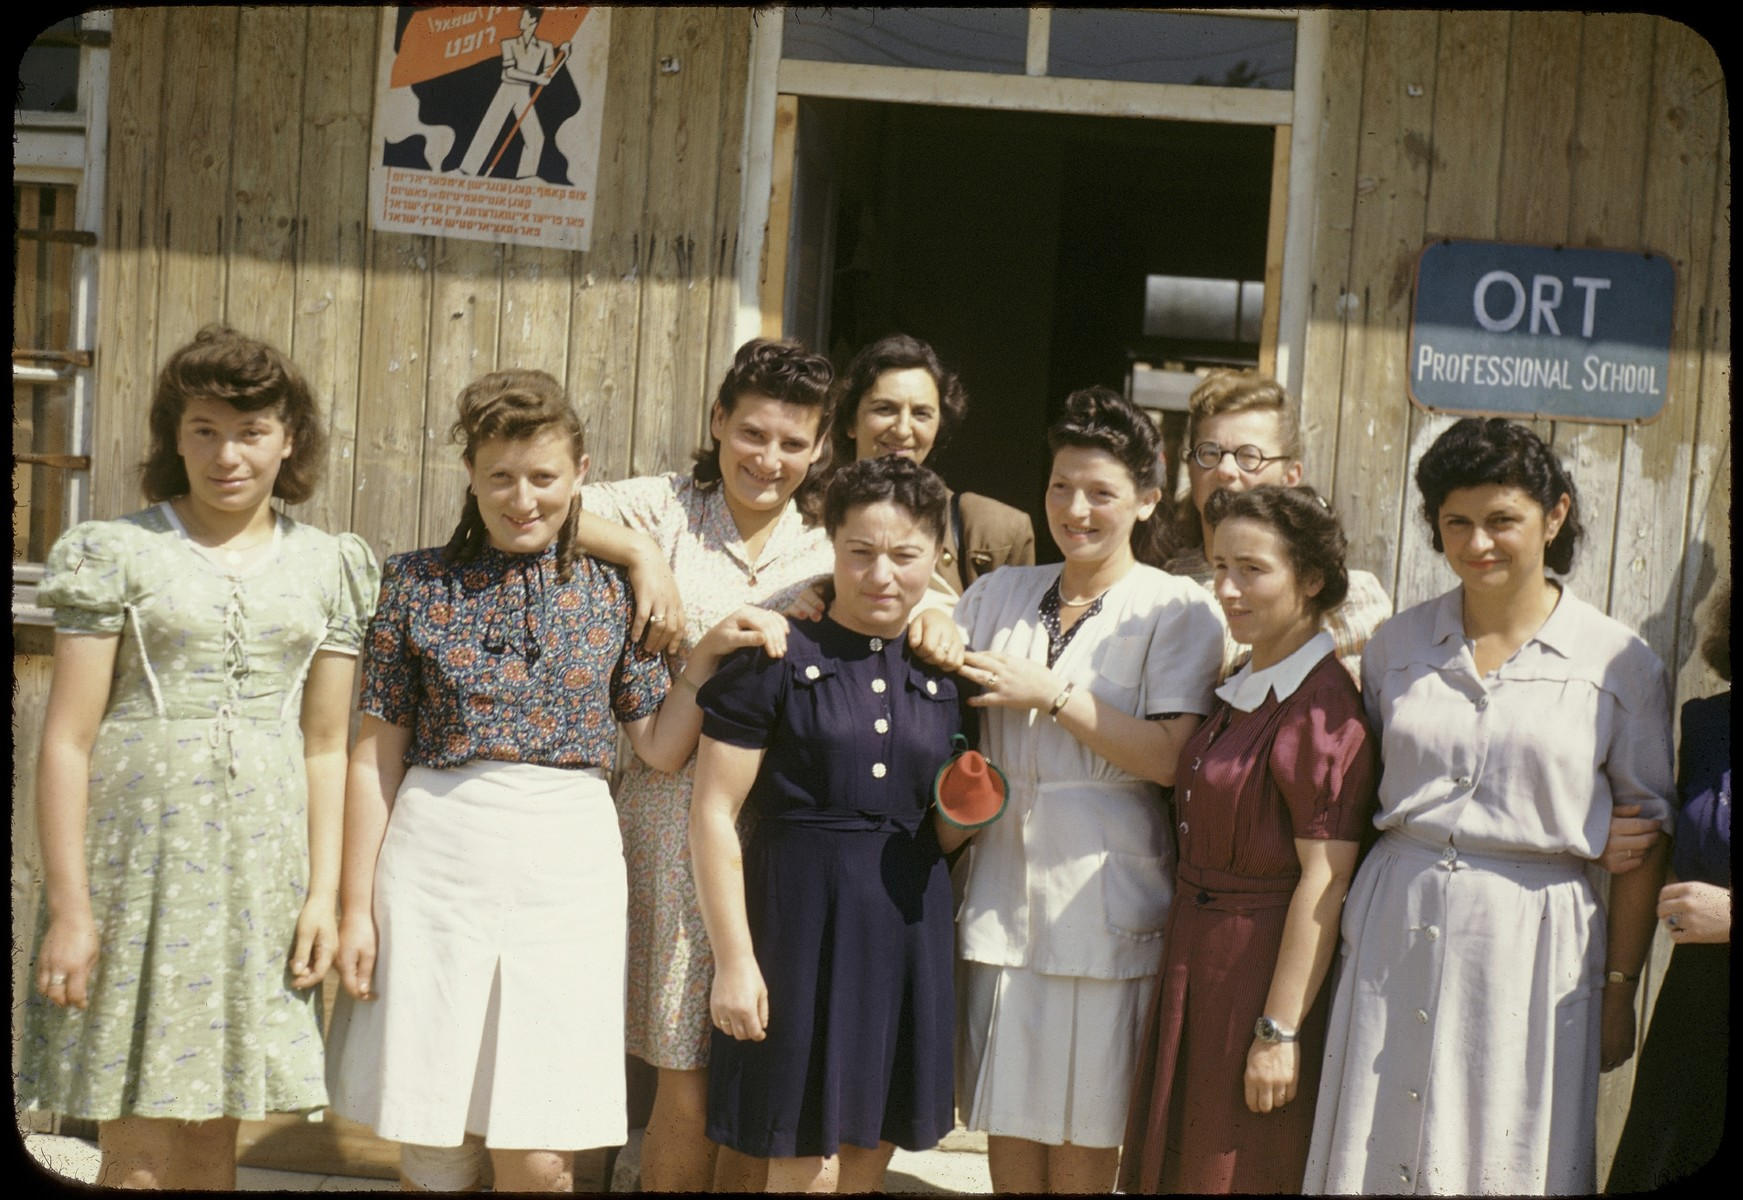 Group portrait of Jewish women standing outside the ORT school in the Feldafing displaced persons camp.  Among those pictured is Judit Ginsburg (first woman on the right).